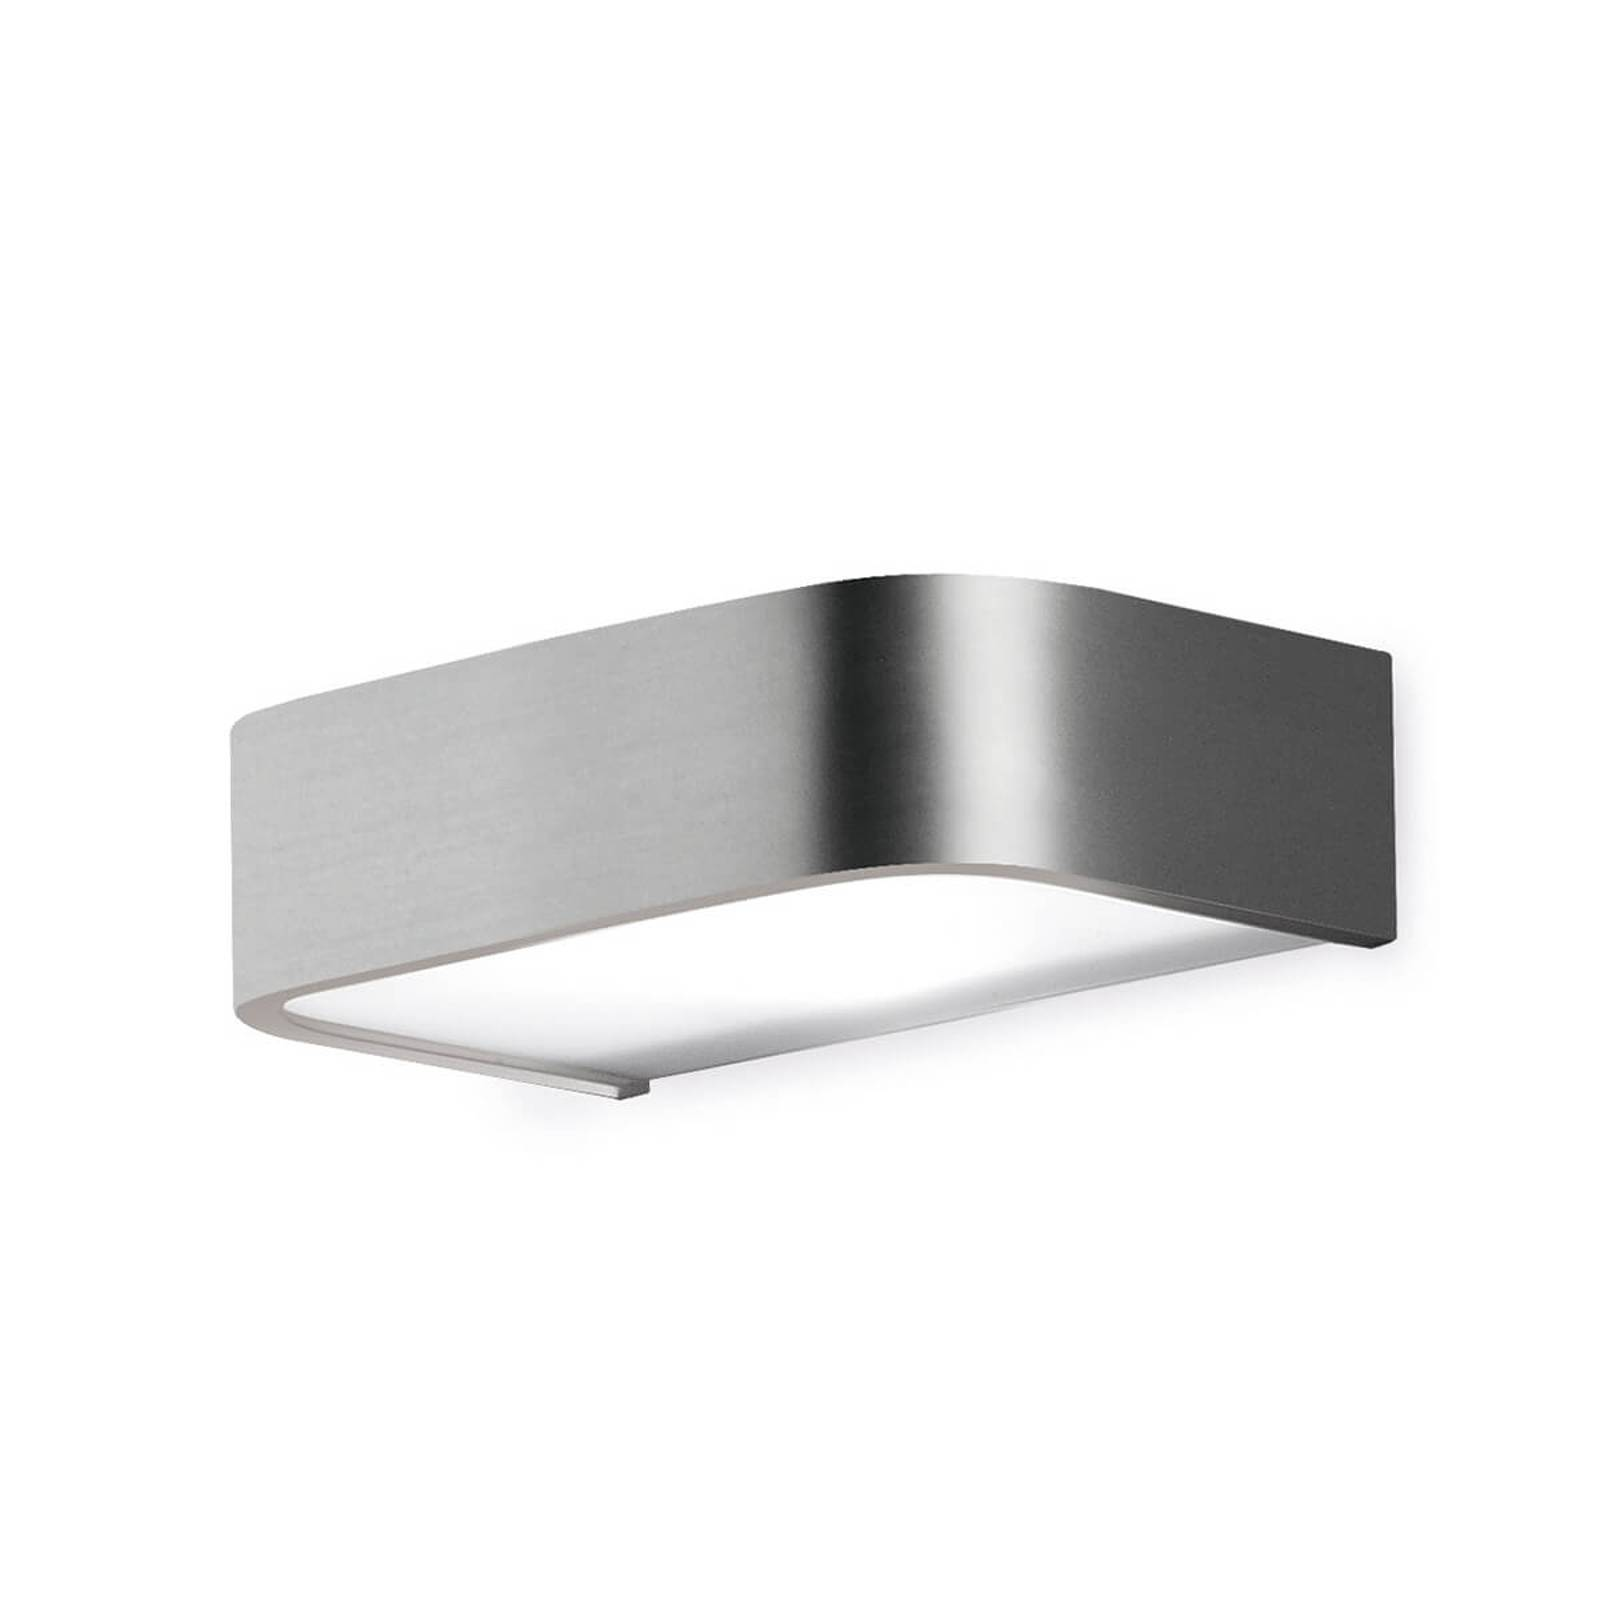 Bathroom wall light Arcos with LED, 15 cm nickel from Pujol